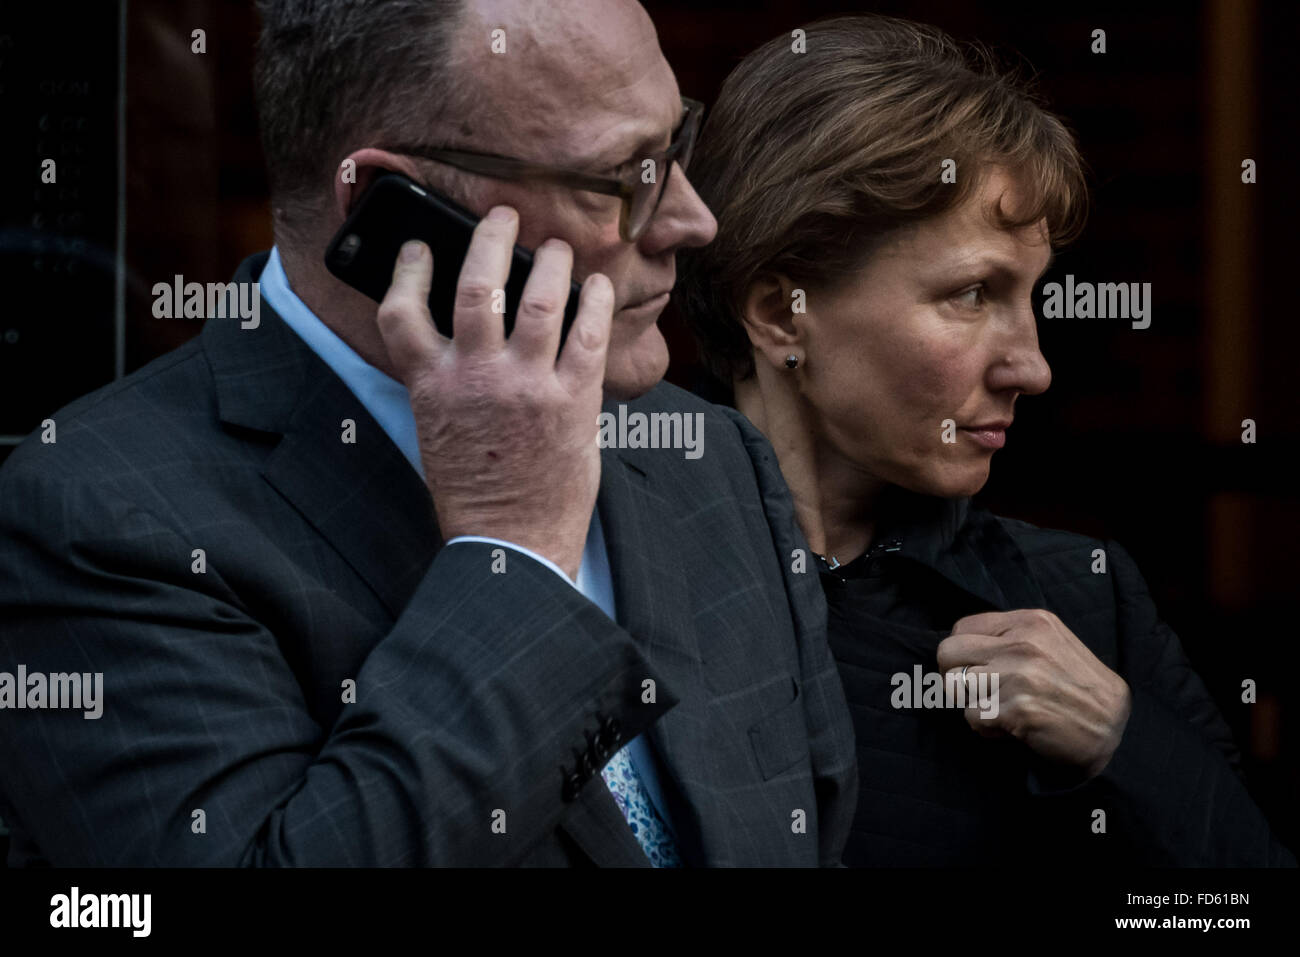 London, UK. 28th Jan, 2016. Marina Litvinenko visits the Home Office with her legal team including Ben Emmerson - Stock Image